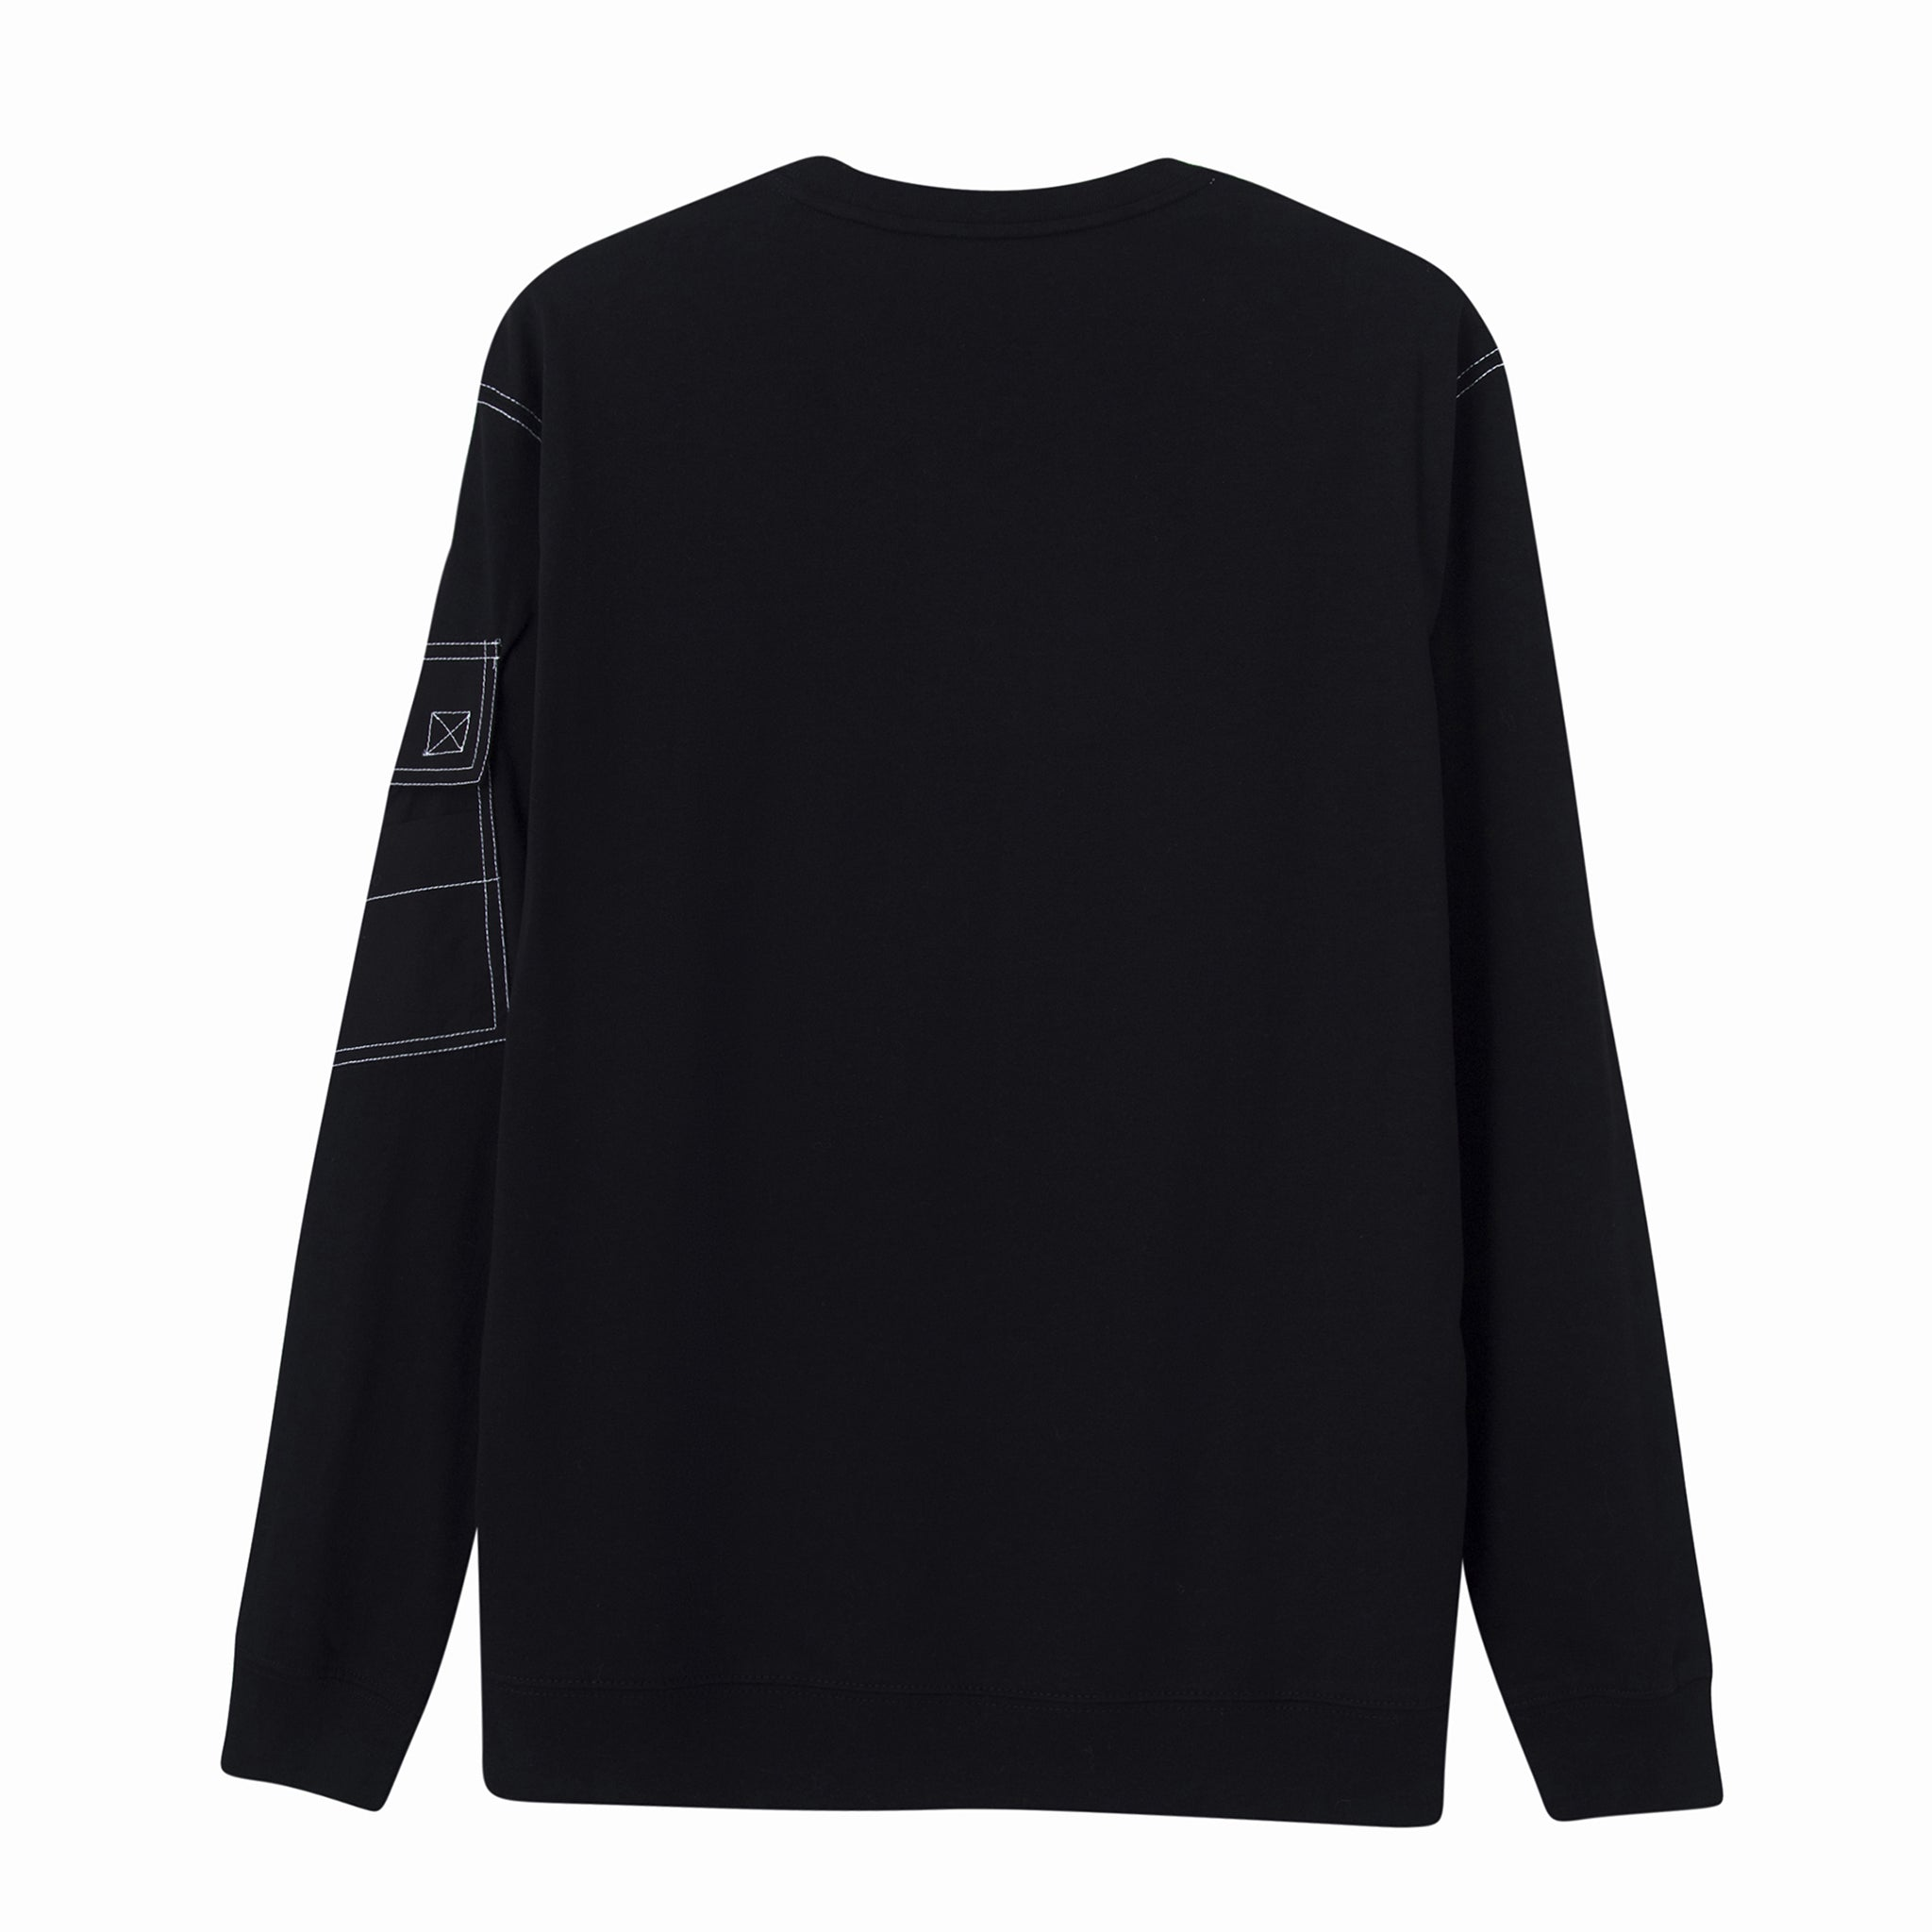 Le Fruit Defendu Pocket Sweatshirt - Black